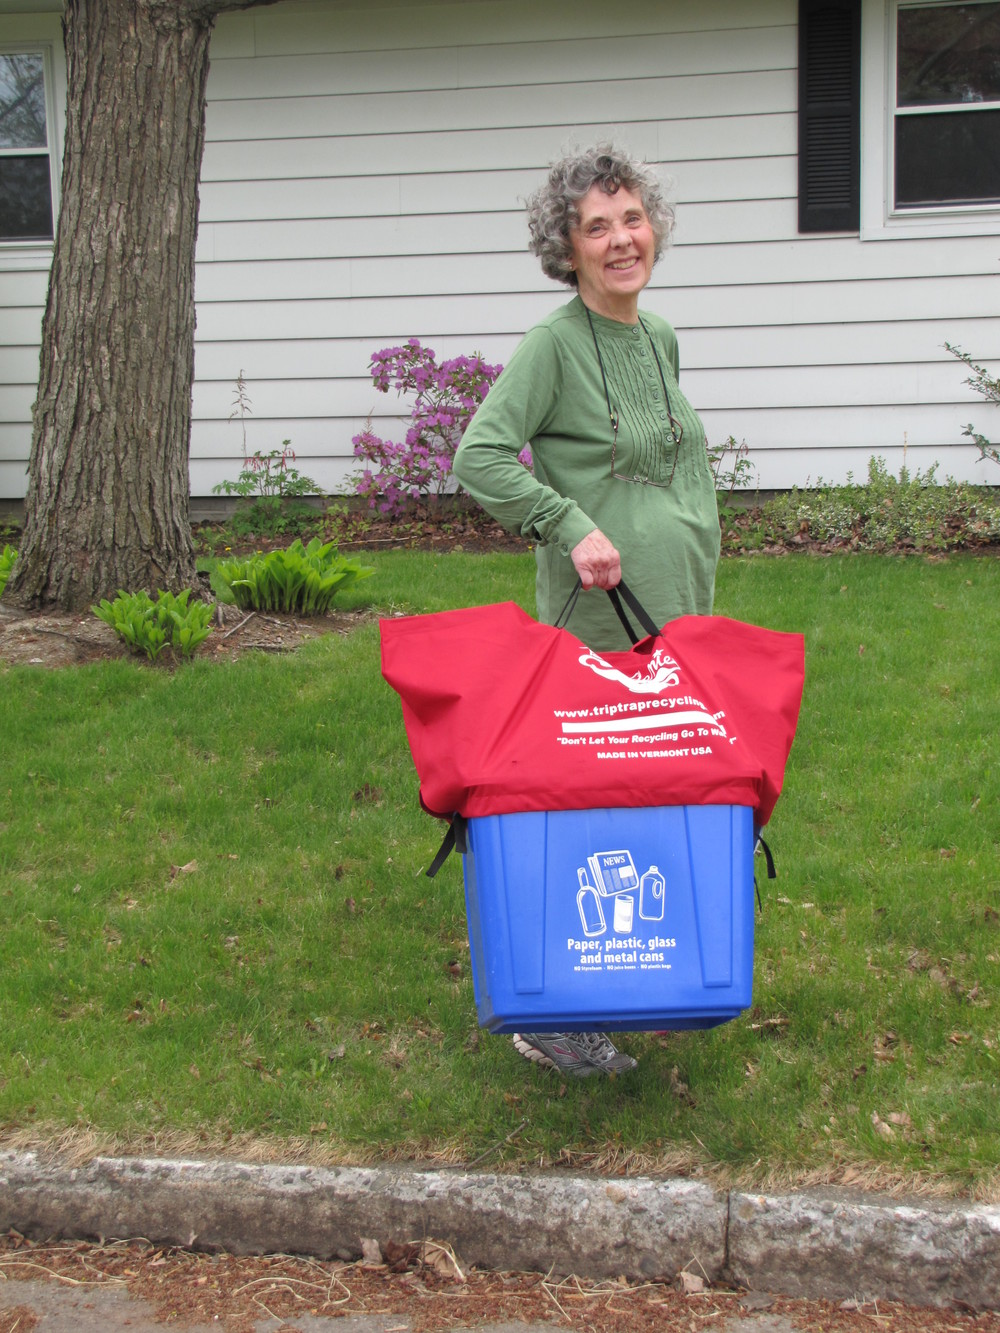 """I love the handles.  It makes it so easy to get my bin to the curb!"" - susan, burlington, Vermont"